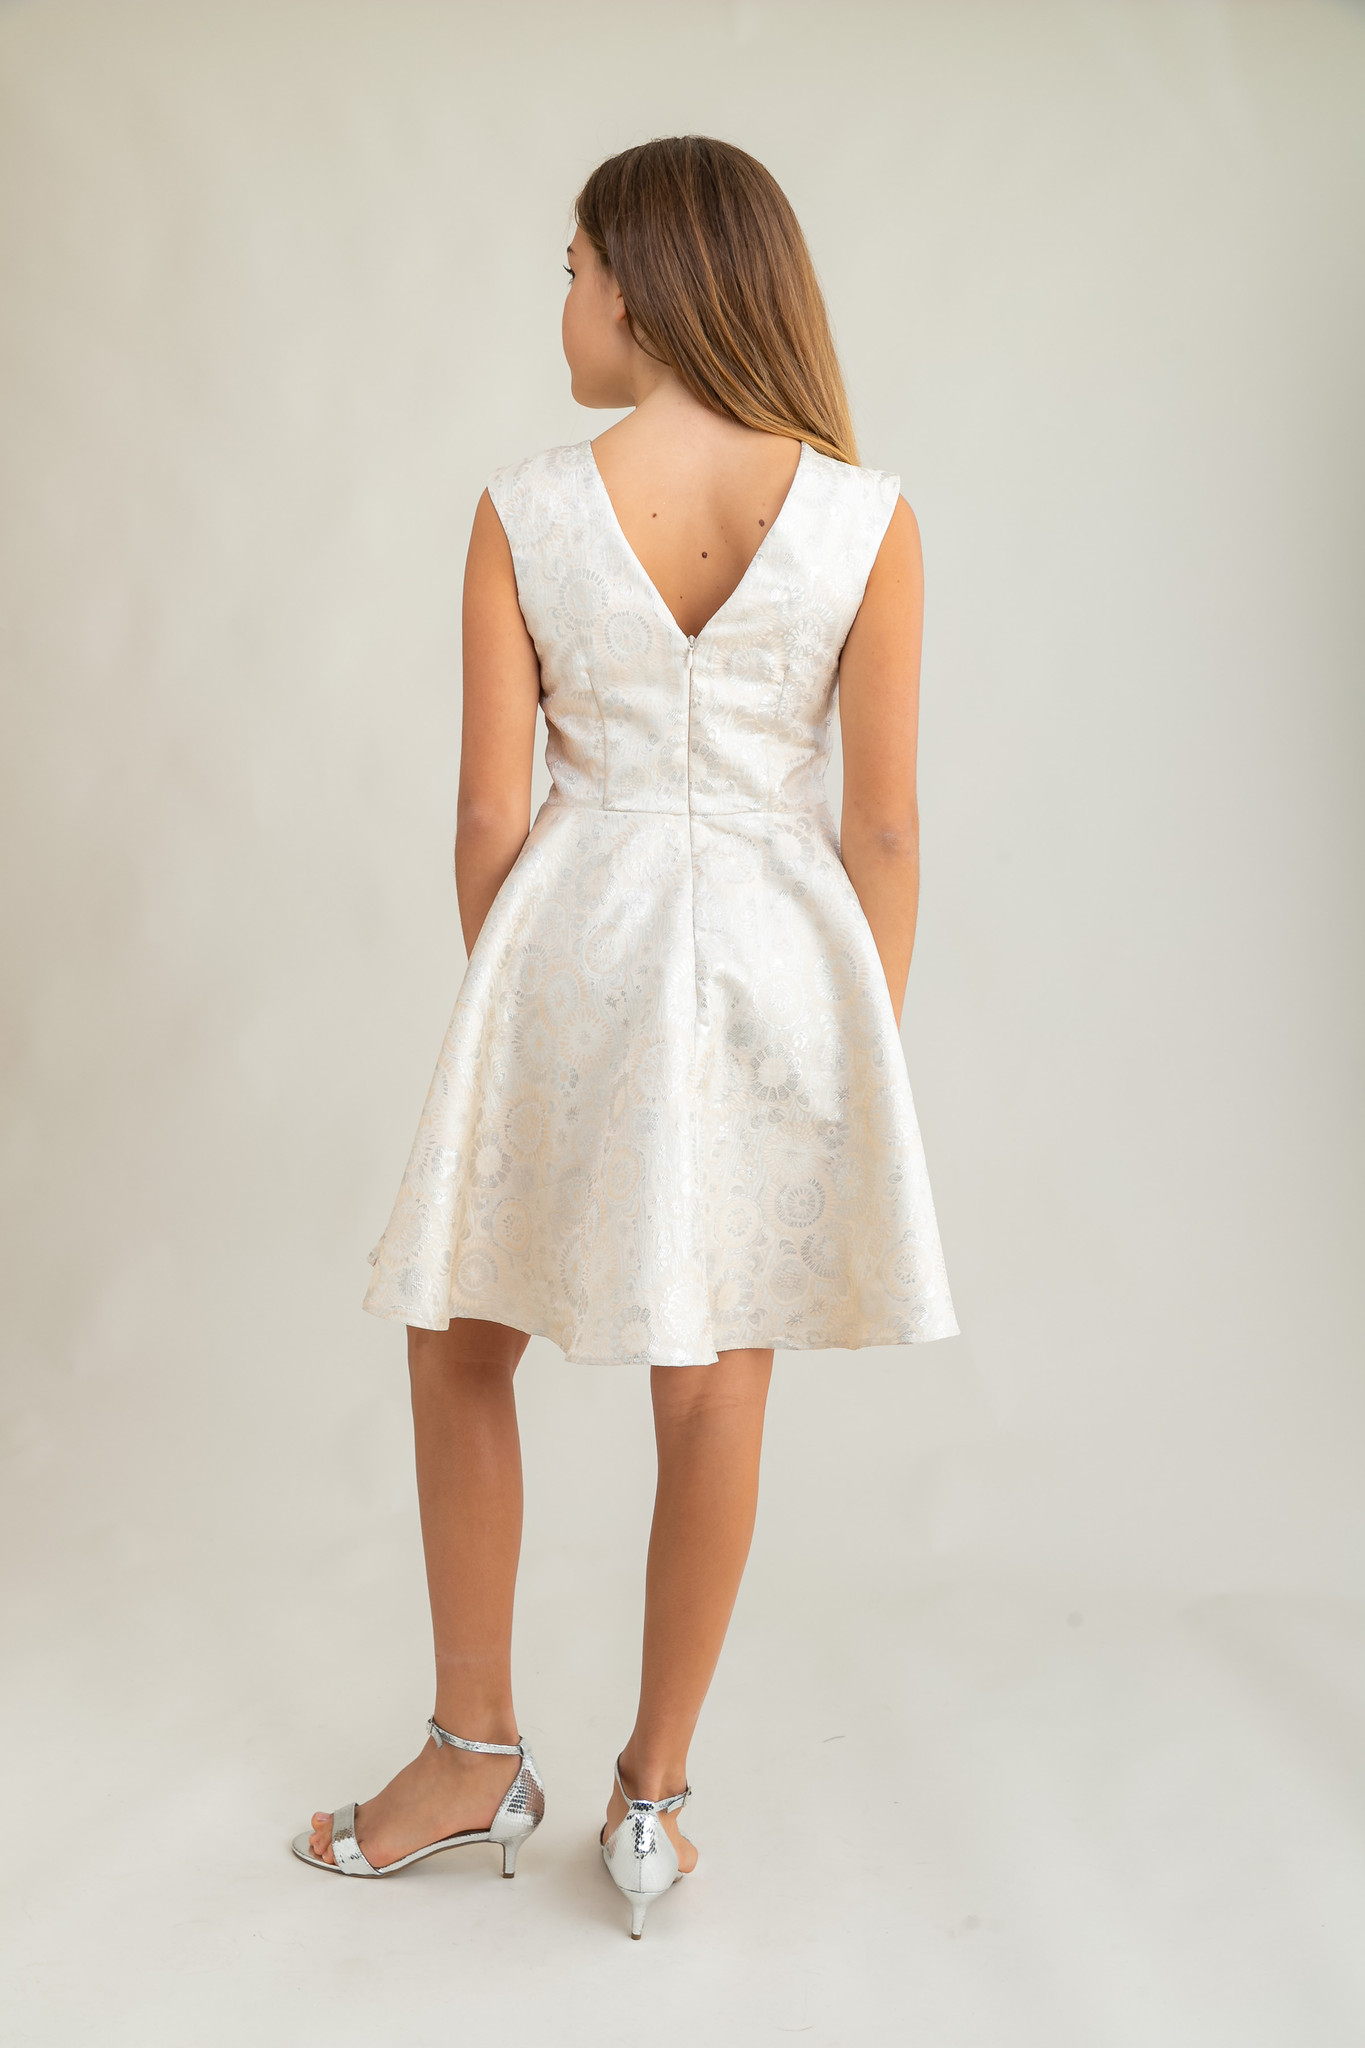 Tween Girls Ivory and Silver Cap Sleeve Dress in Longer Length back view.